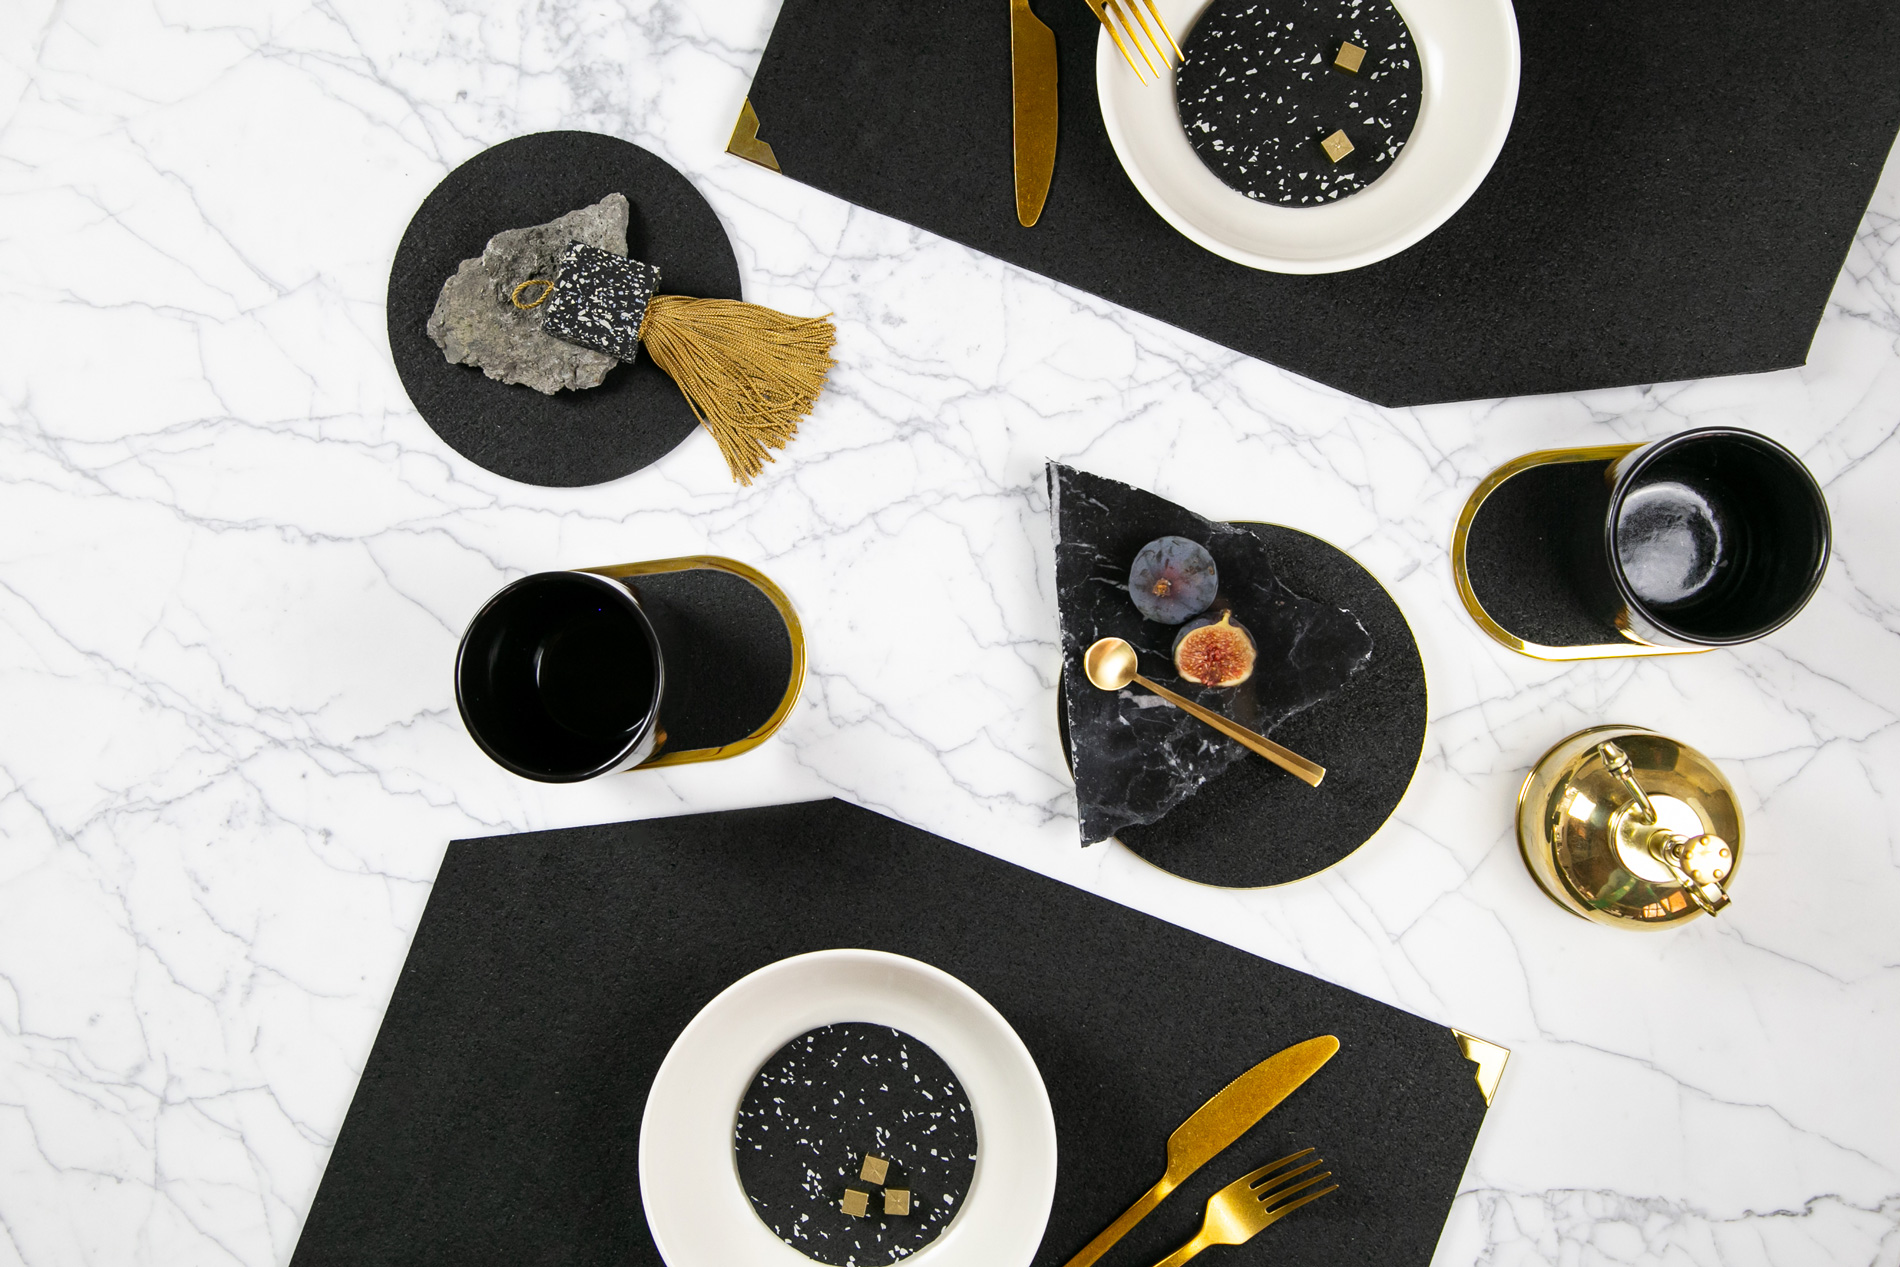 Deluxe Dinner Setting in Pure Black